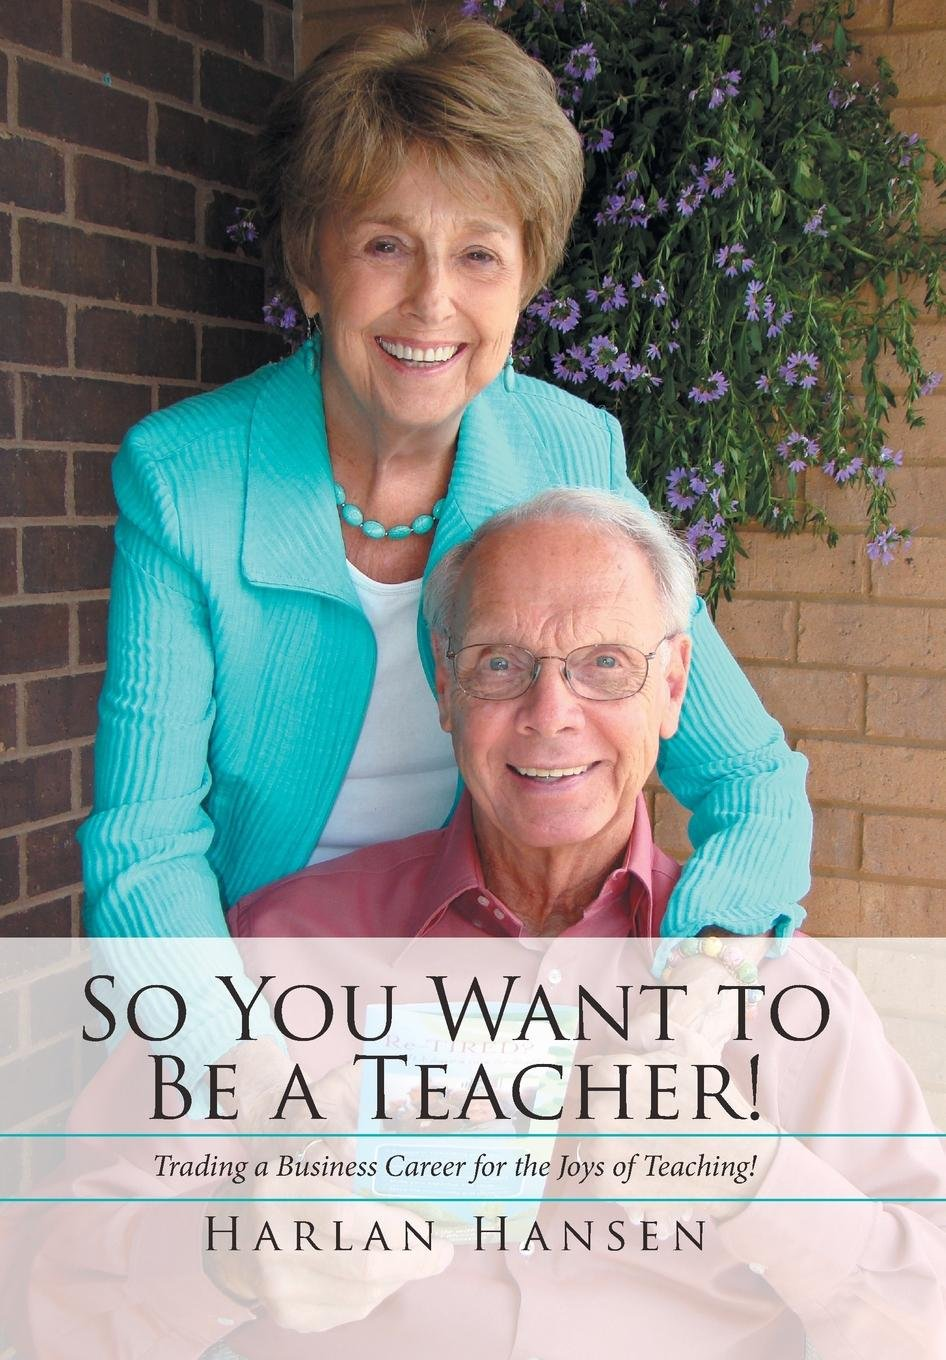 So You Want to Be a Teacher!: Trading a Business Career for the Joys of Teaching! PDF